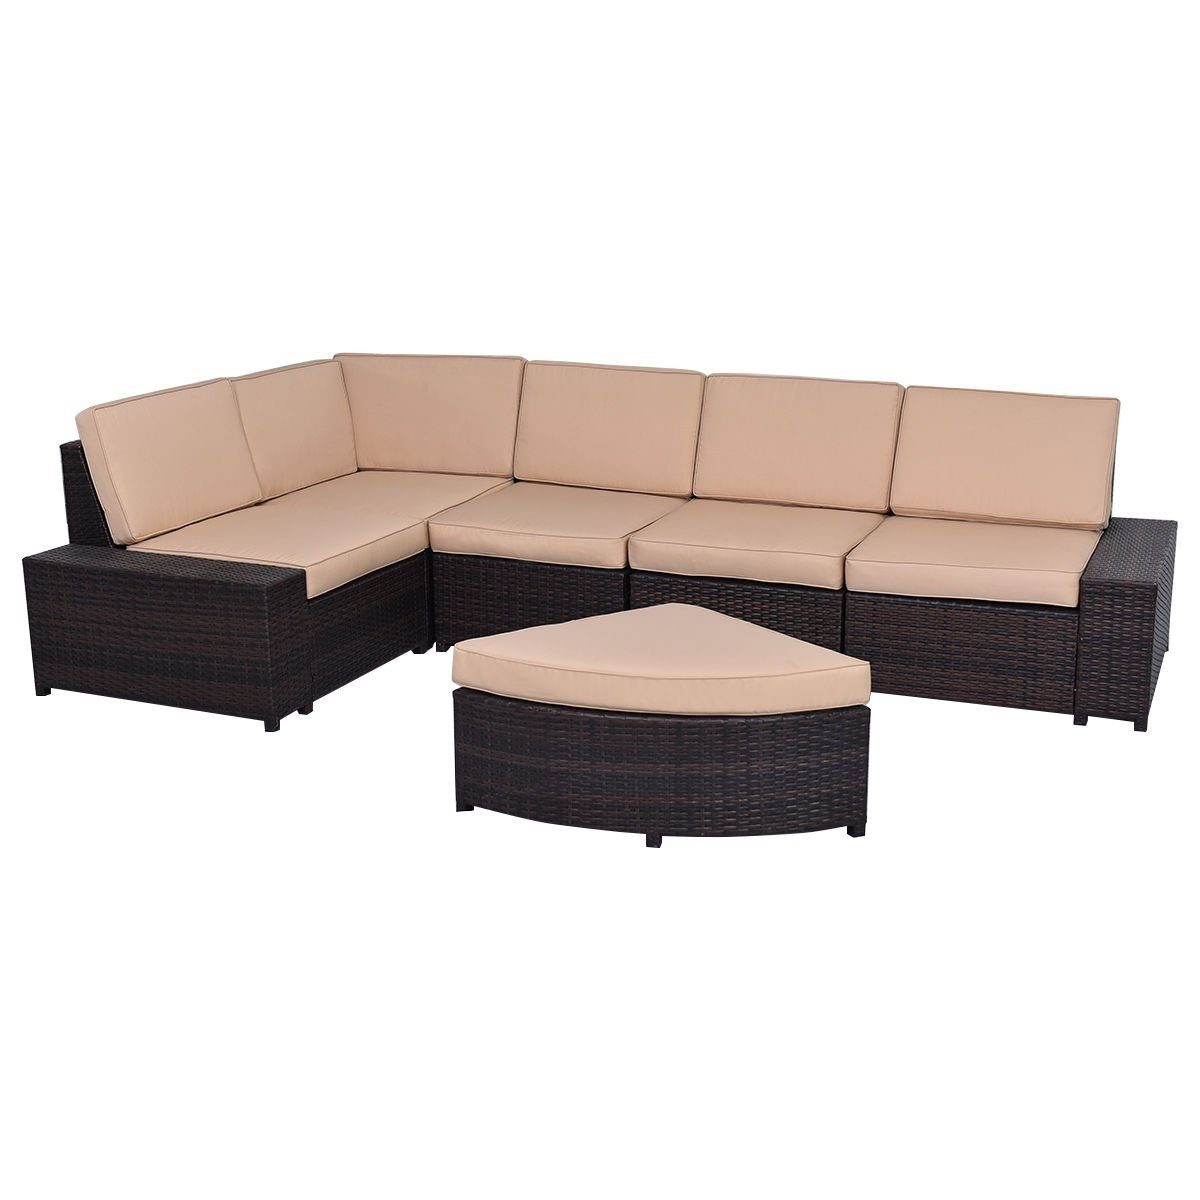 New MTN-G MTN-G 6 PCS Patio Furniture Set Rattan Wicker Table Shelf Sofa Garden W Brown Cushion by MTN Gearsmith